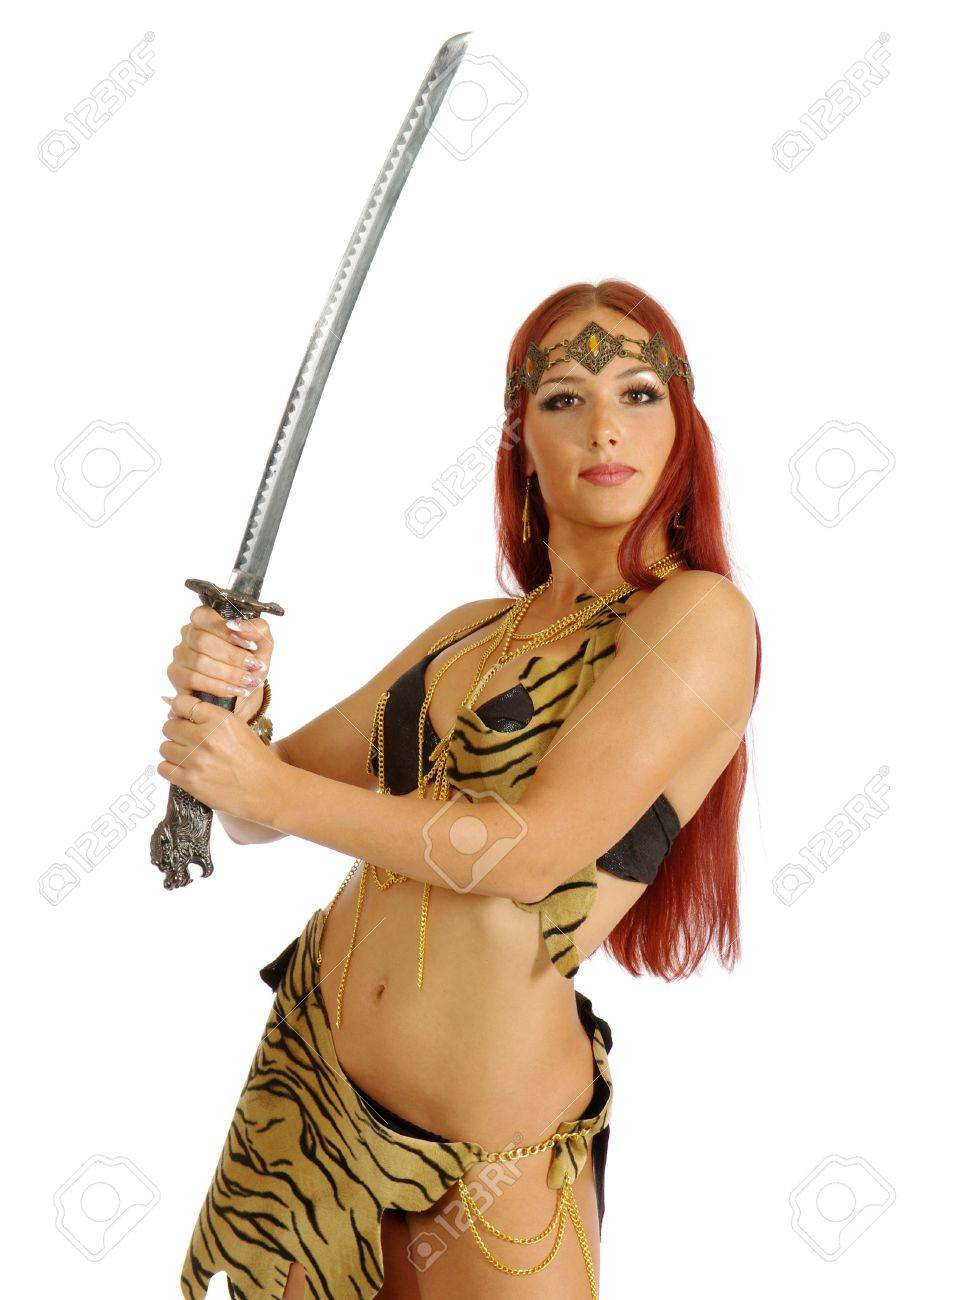 young warrior woman holding sword in her hand isolated on white background Stock Photo - 10372126